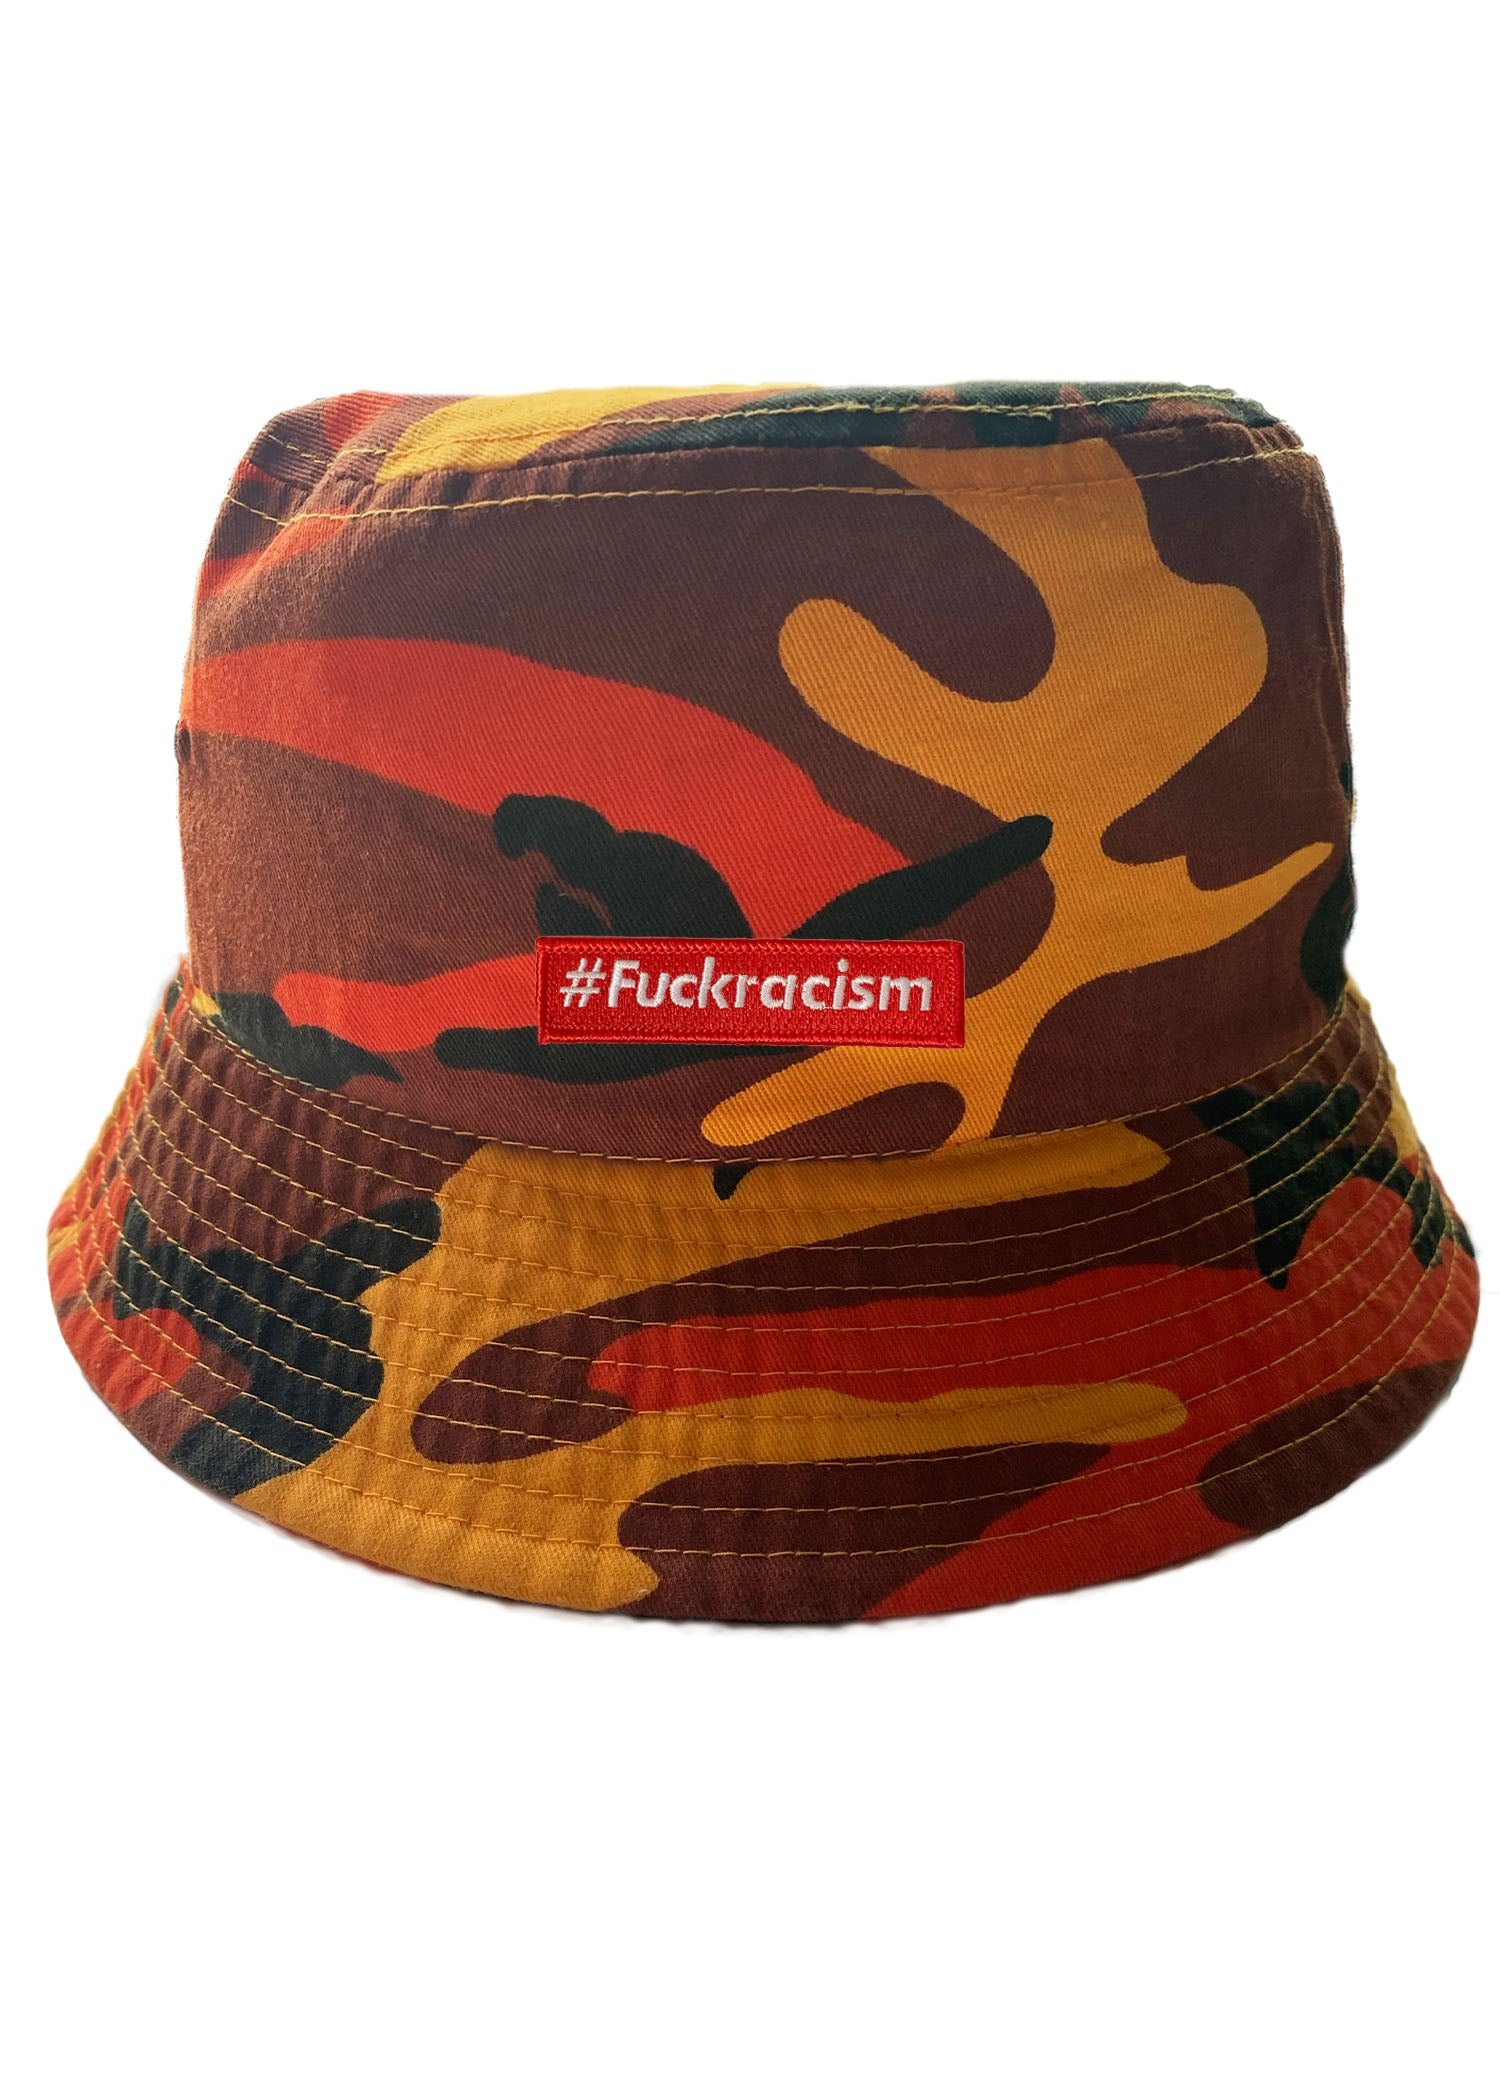 Fuck Racism Bucket Hat